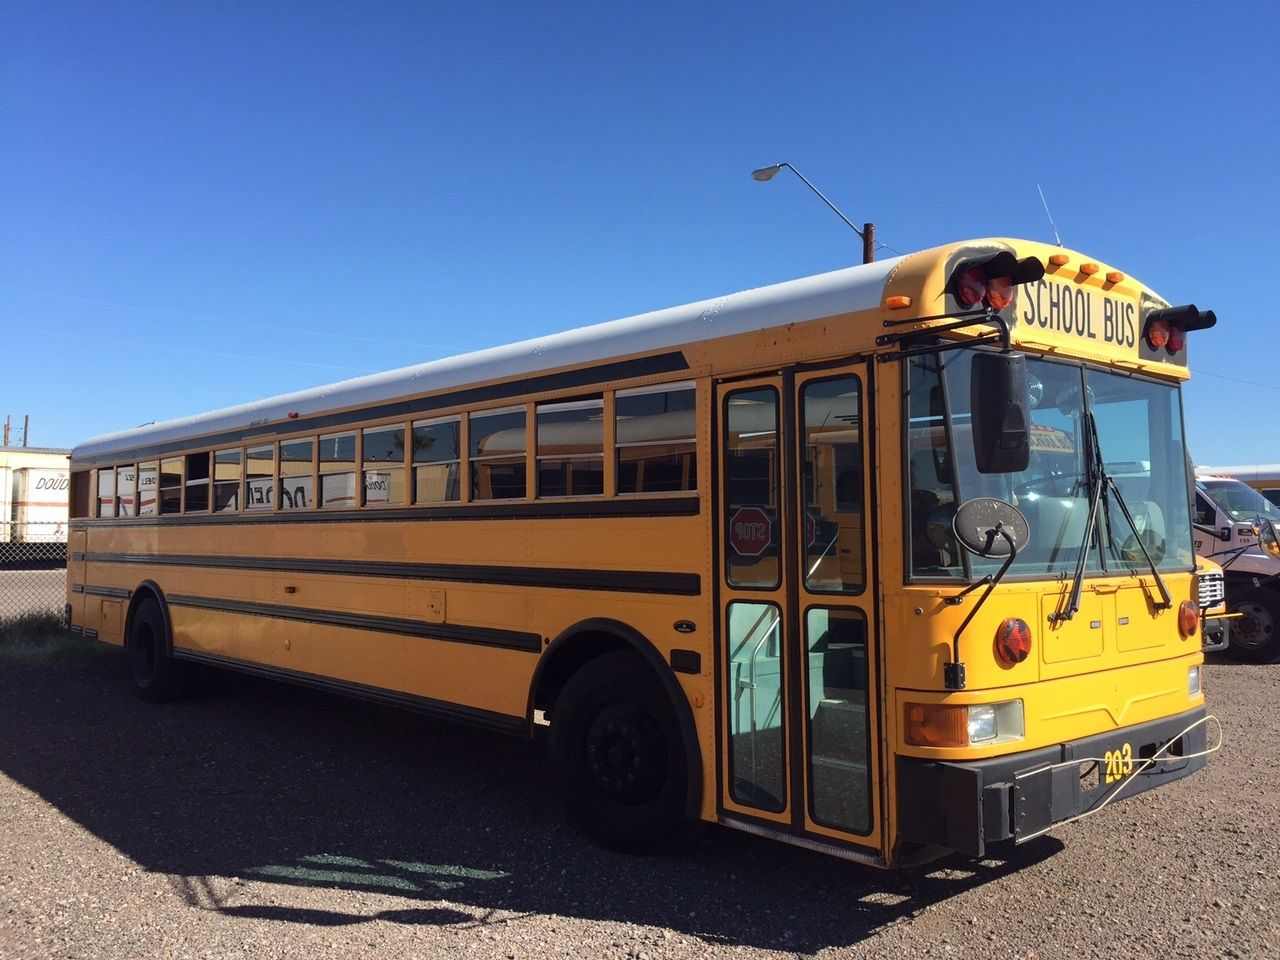 2001 International School Bus together with Erica Schrull Challenger Girl 170 together with 2005 Dodge Caravan further Model details additionally 2018 Chevrolet Traverse Premier Review First Drive. on dodge caravan engine